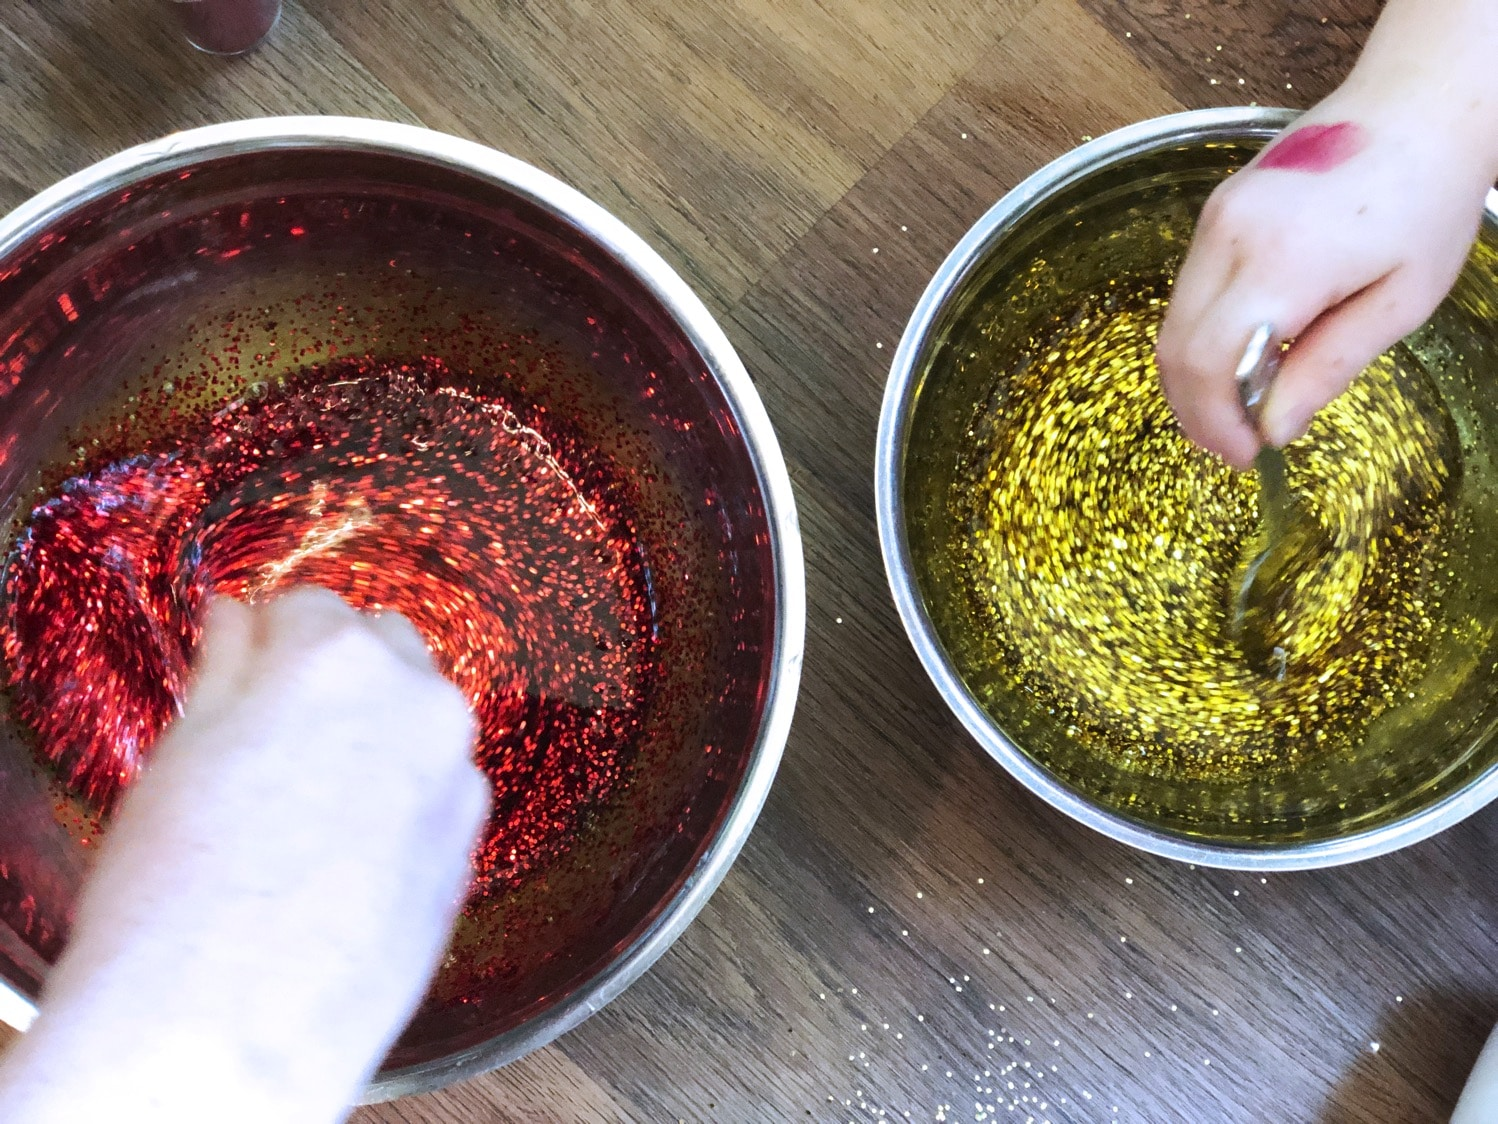 Stirring glitter slime